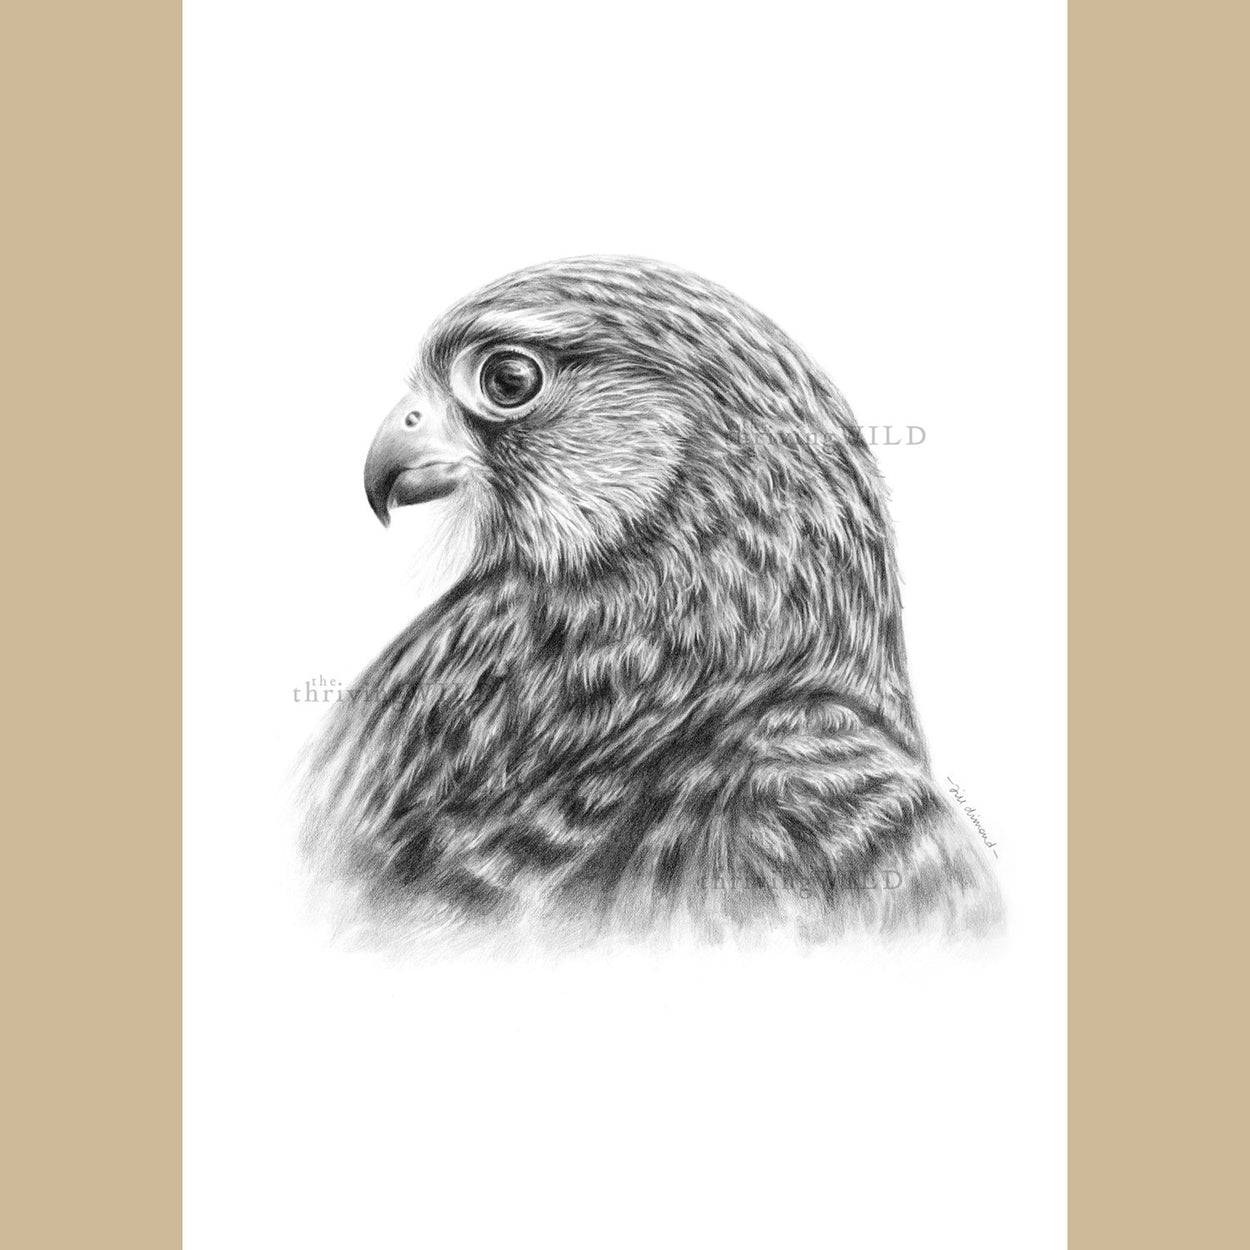 Female Kestrel Pencil Drawing Bird of Prey - The Thriving Wild - Jill Dimond